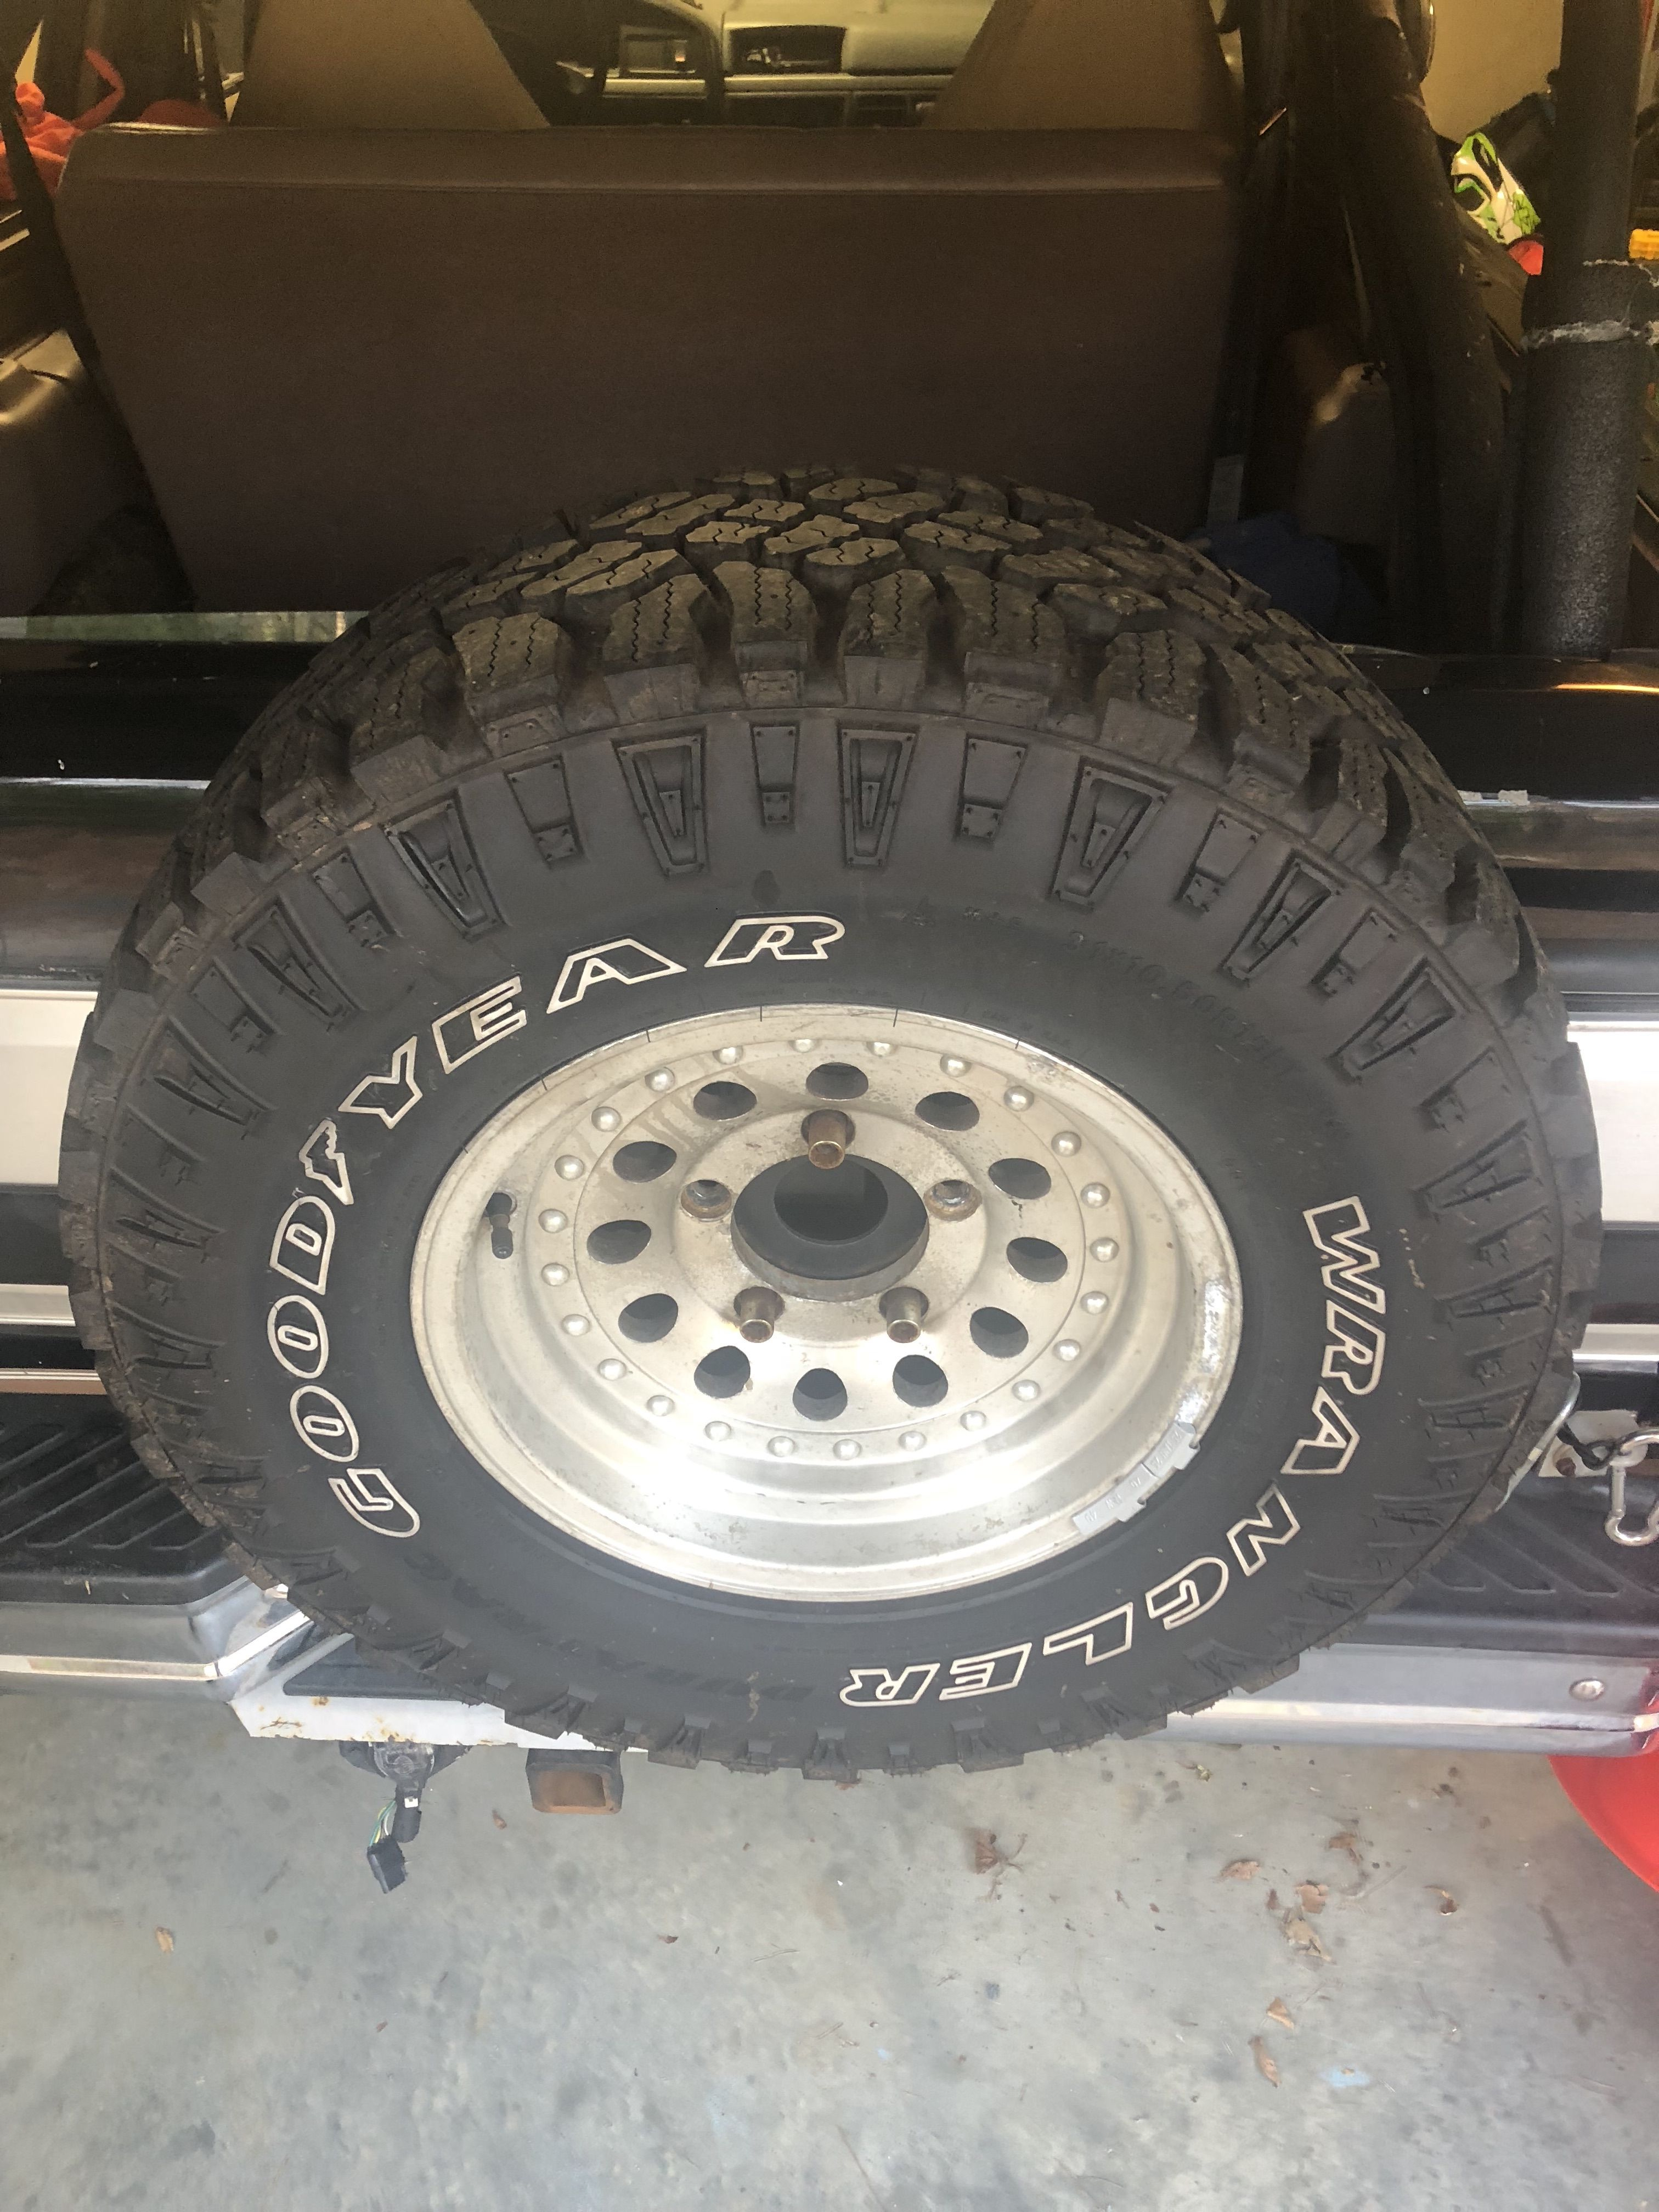 How much to get your tires rotated